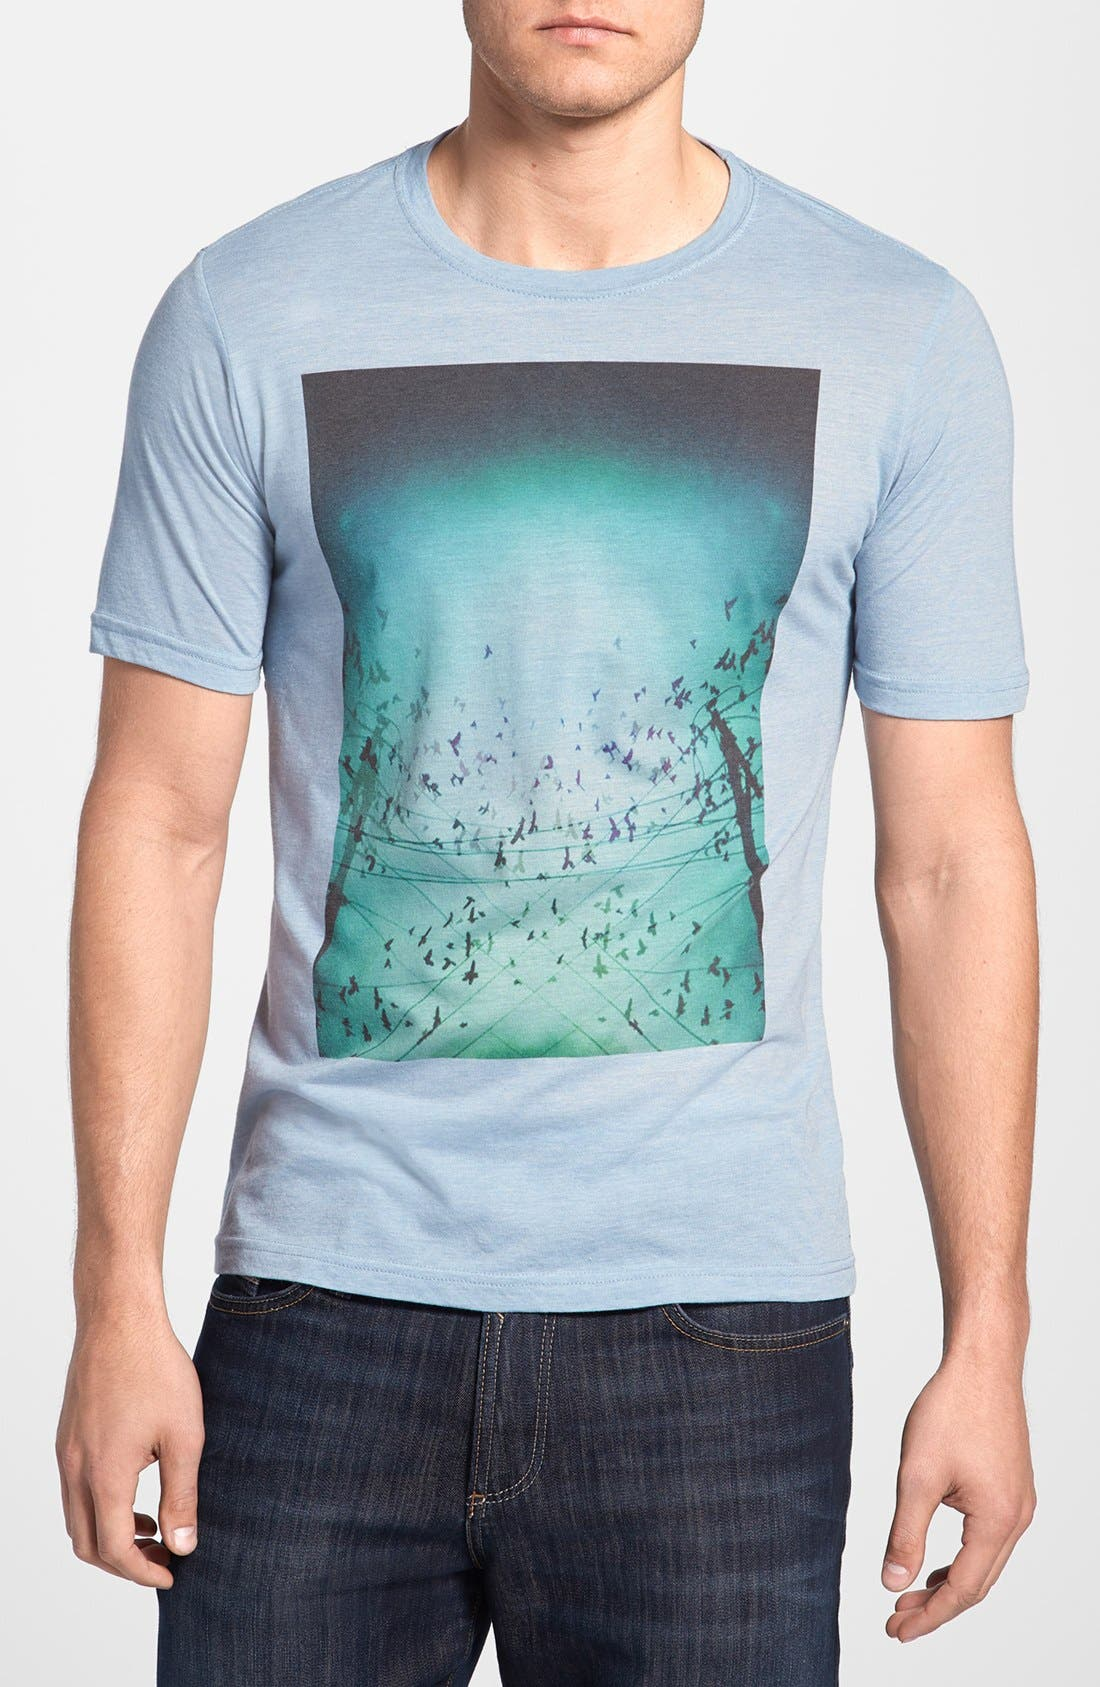 Alternate Image 1 Selected - Bowery Supply 'Sky Birds' Graphic T-Shirt